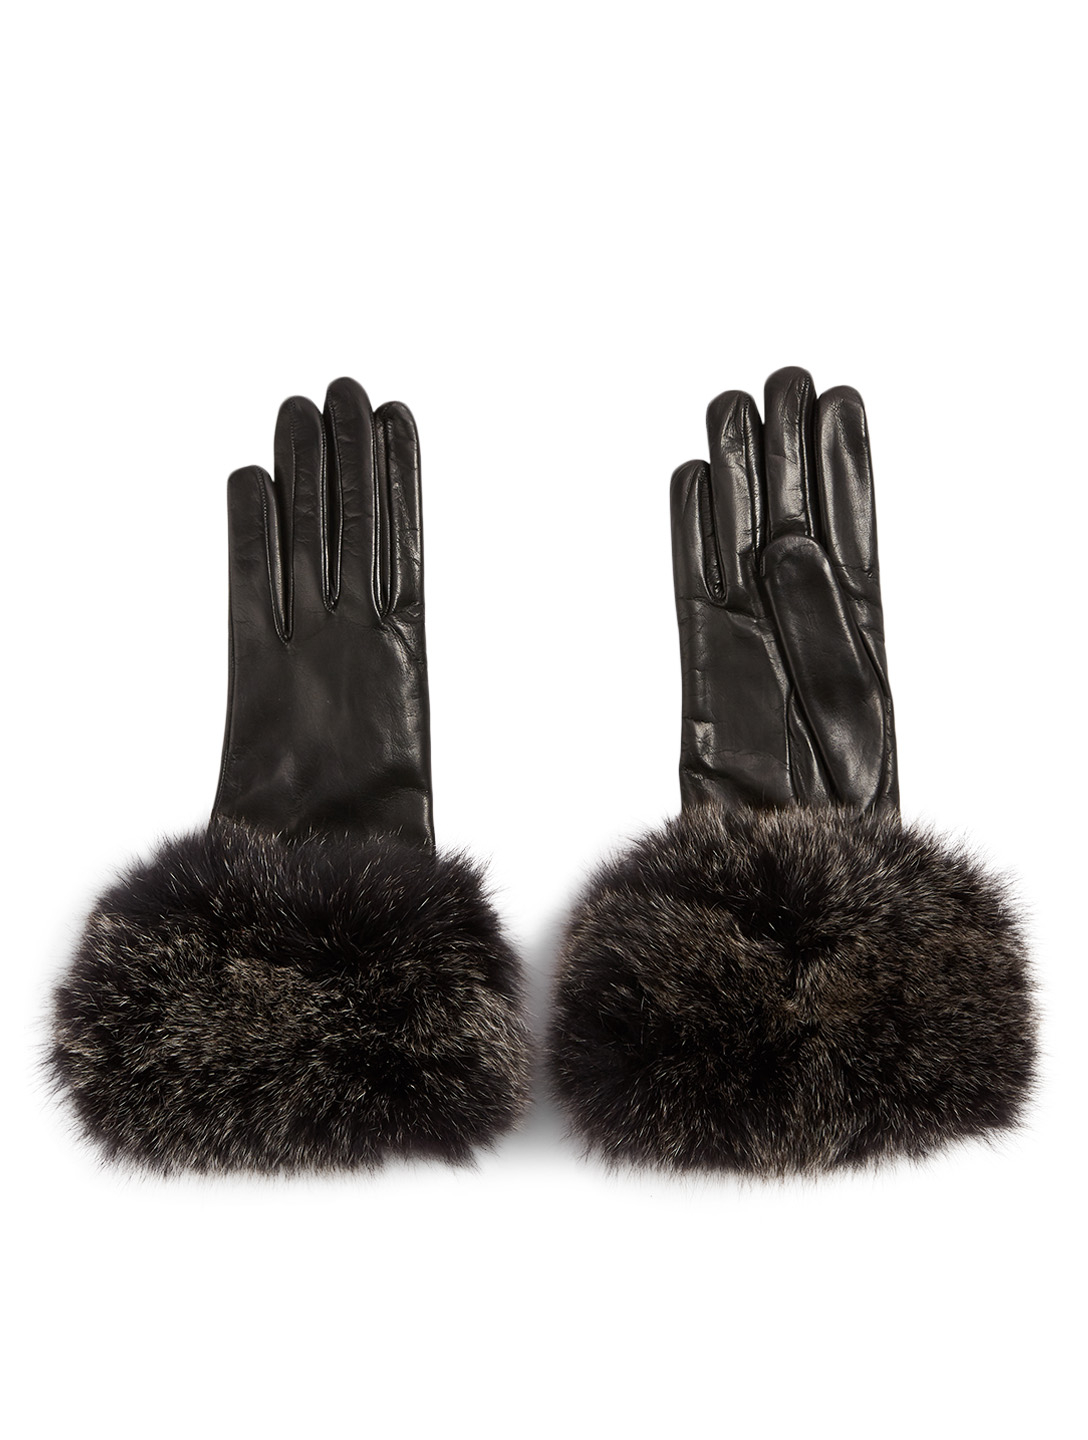 FLORIANA GLOVES Cashmere-Lined Leather Gloves With Fur Cuff Women's Black